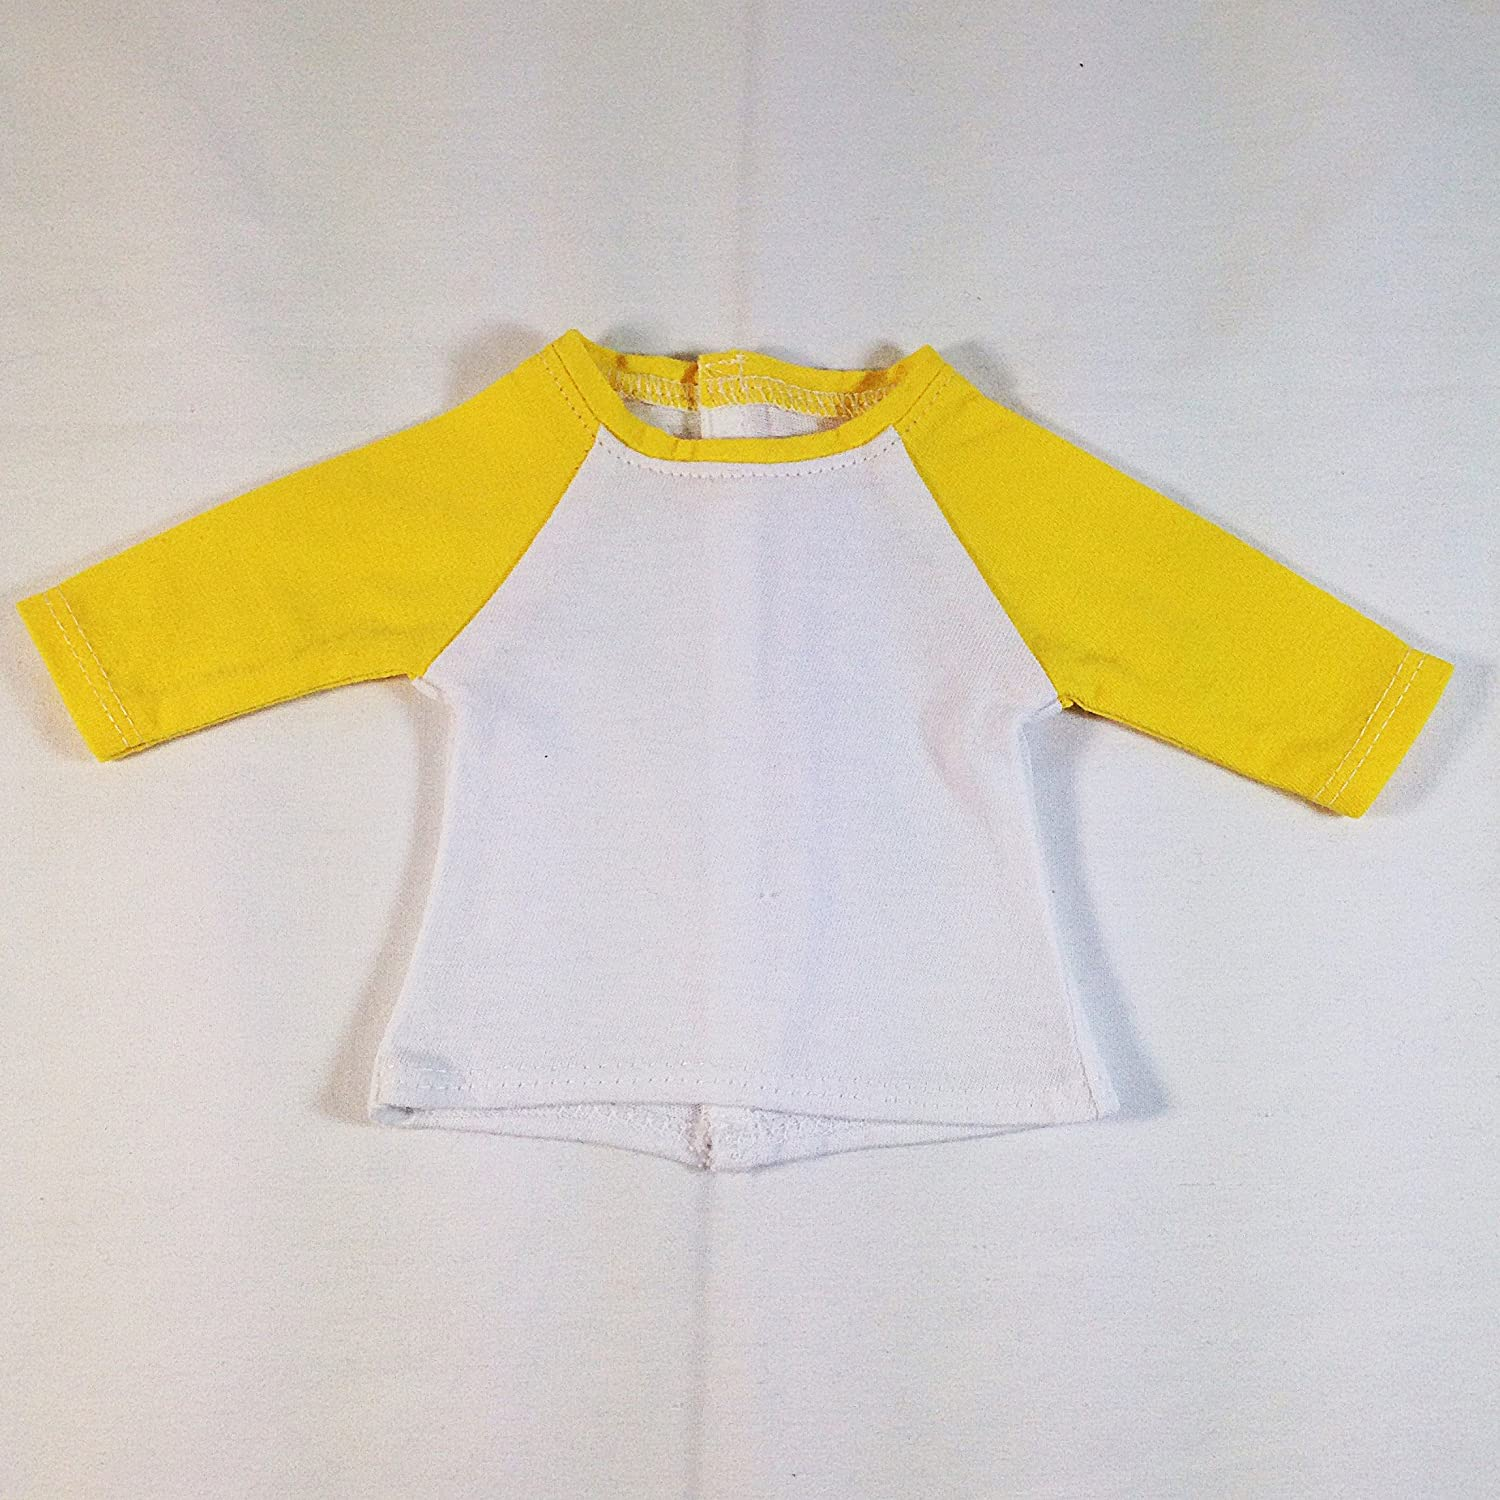 White//Royal Blue 3//4 Raglan Sleeve Baseball Shirt for 18 Inch Dolls